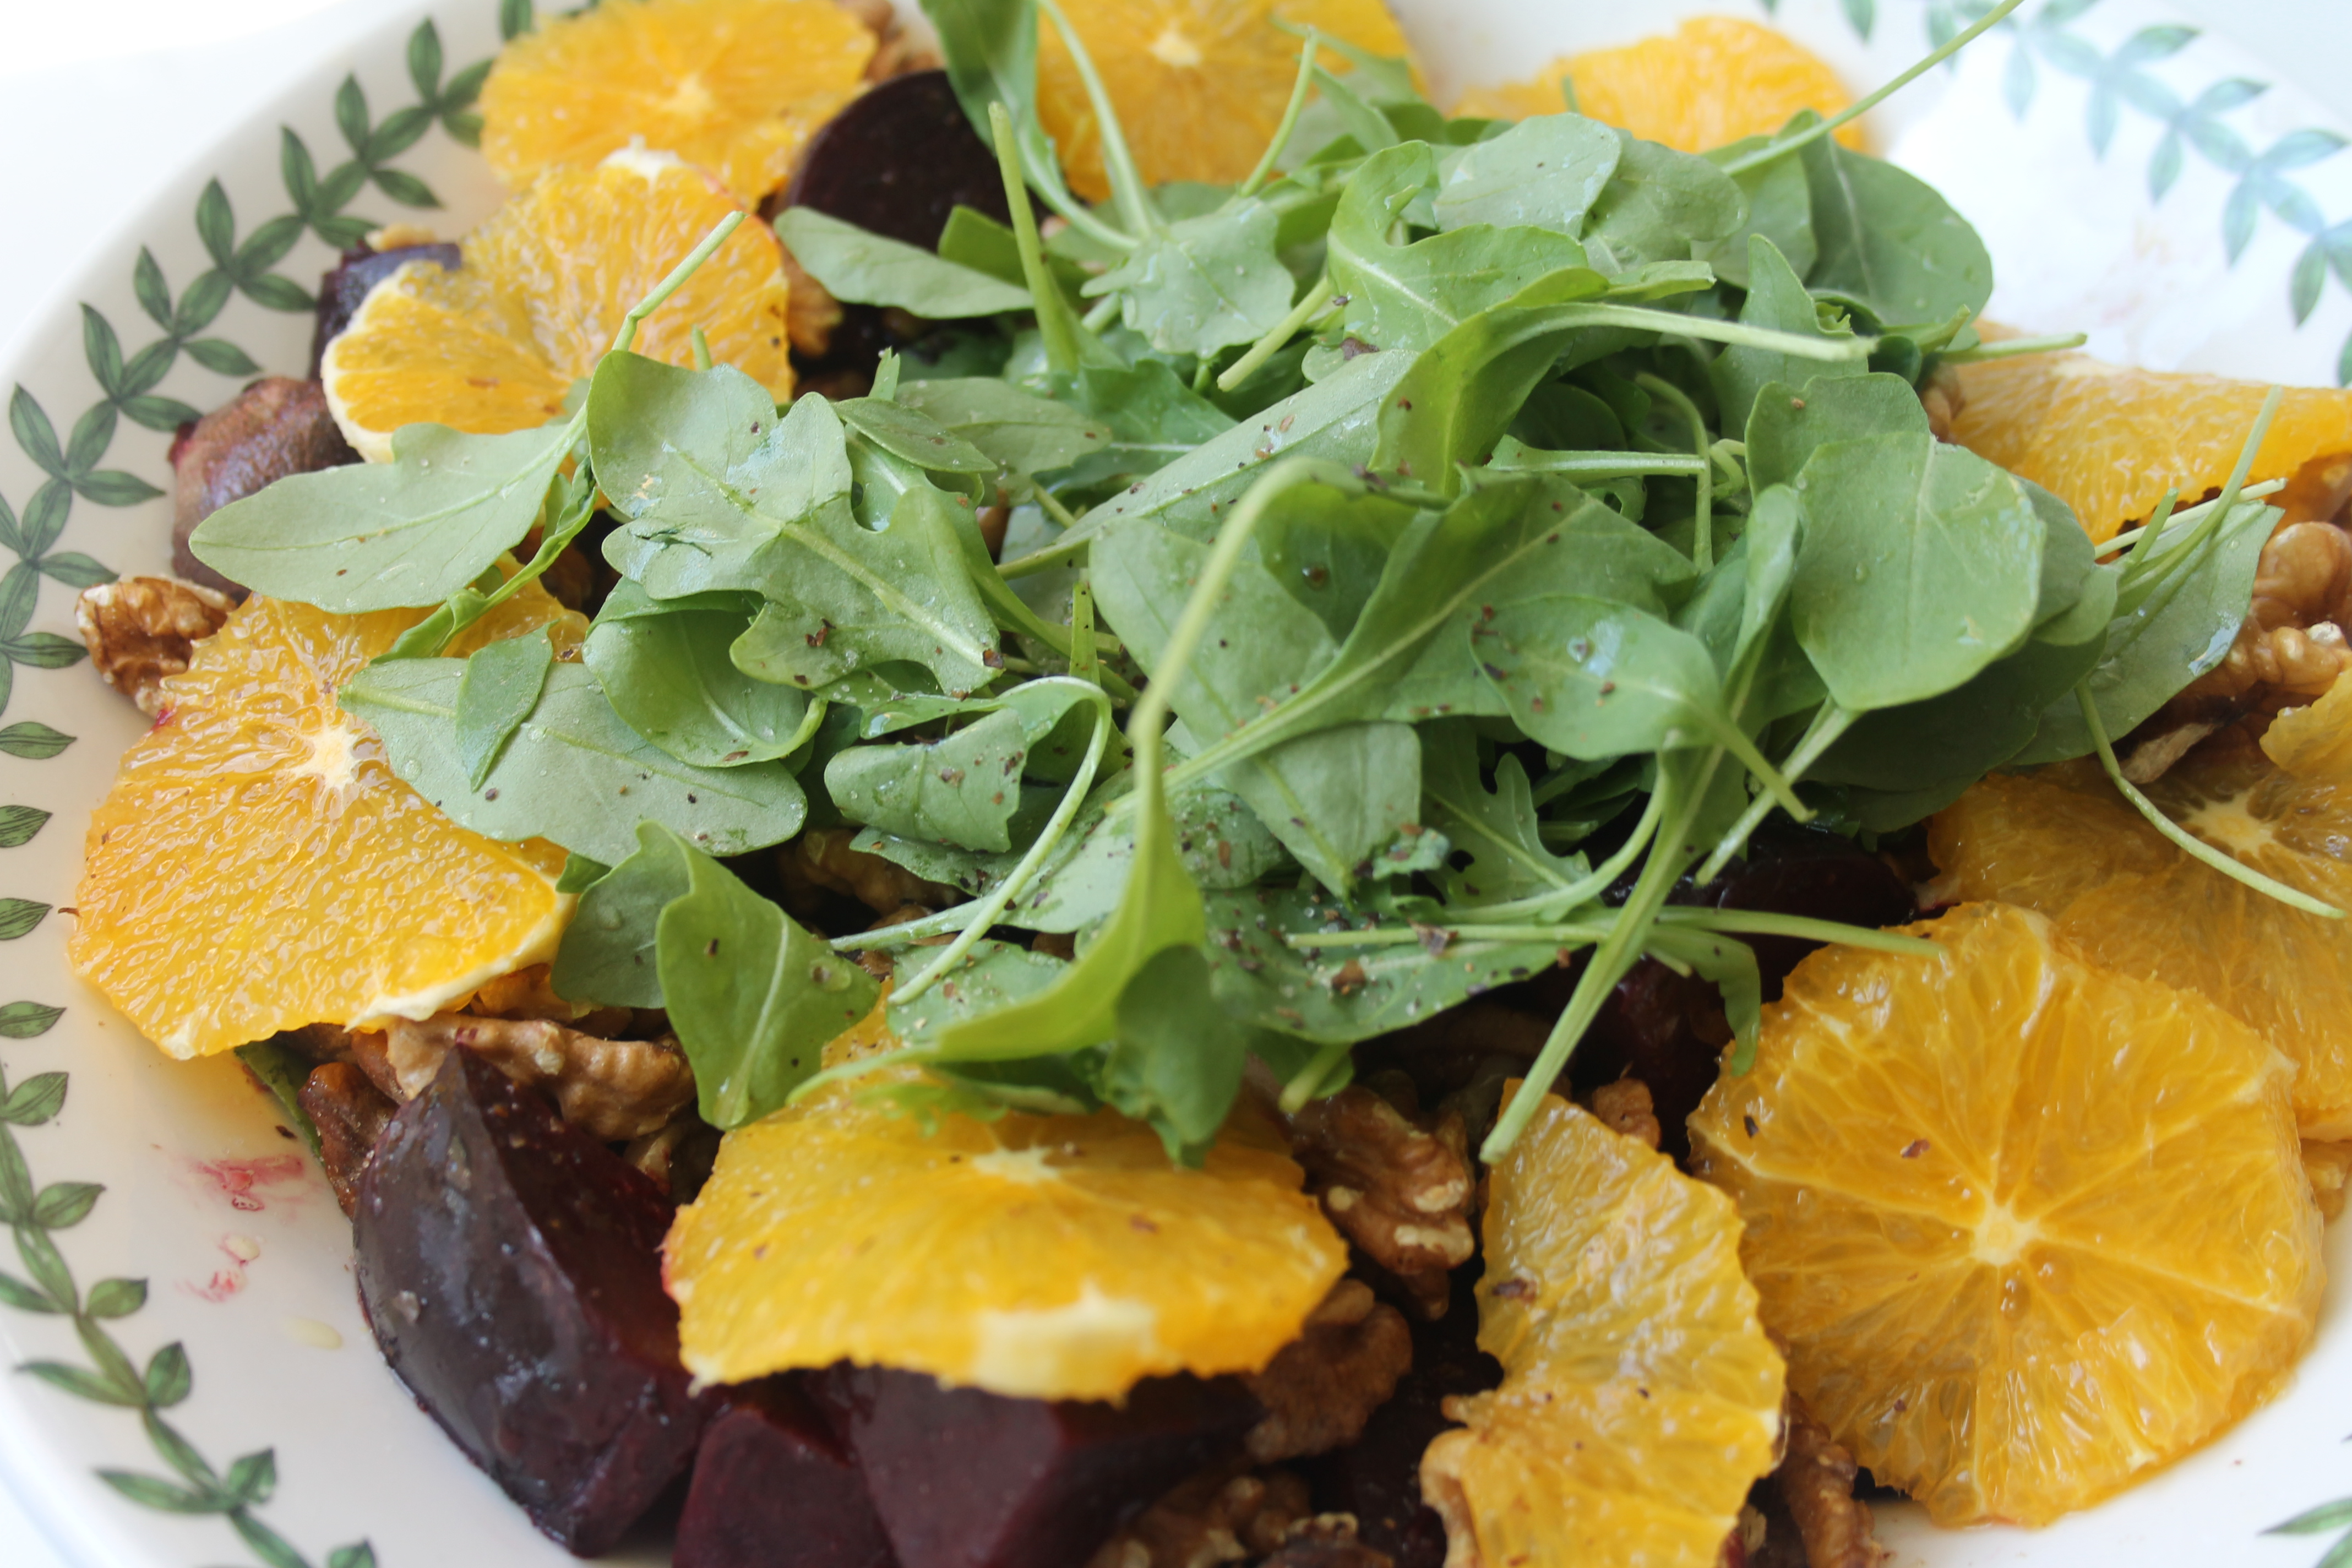 Beetroot and orange with watercress salad